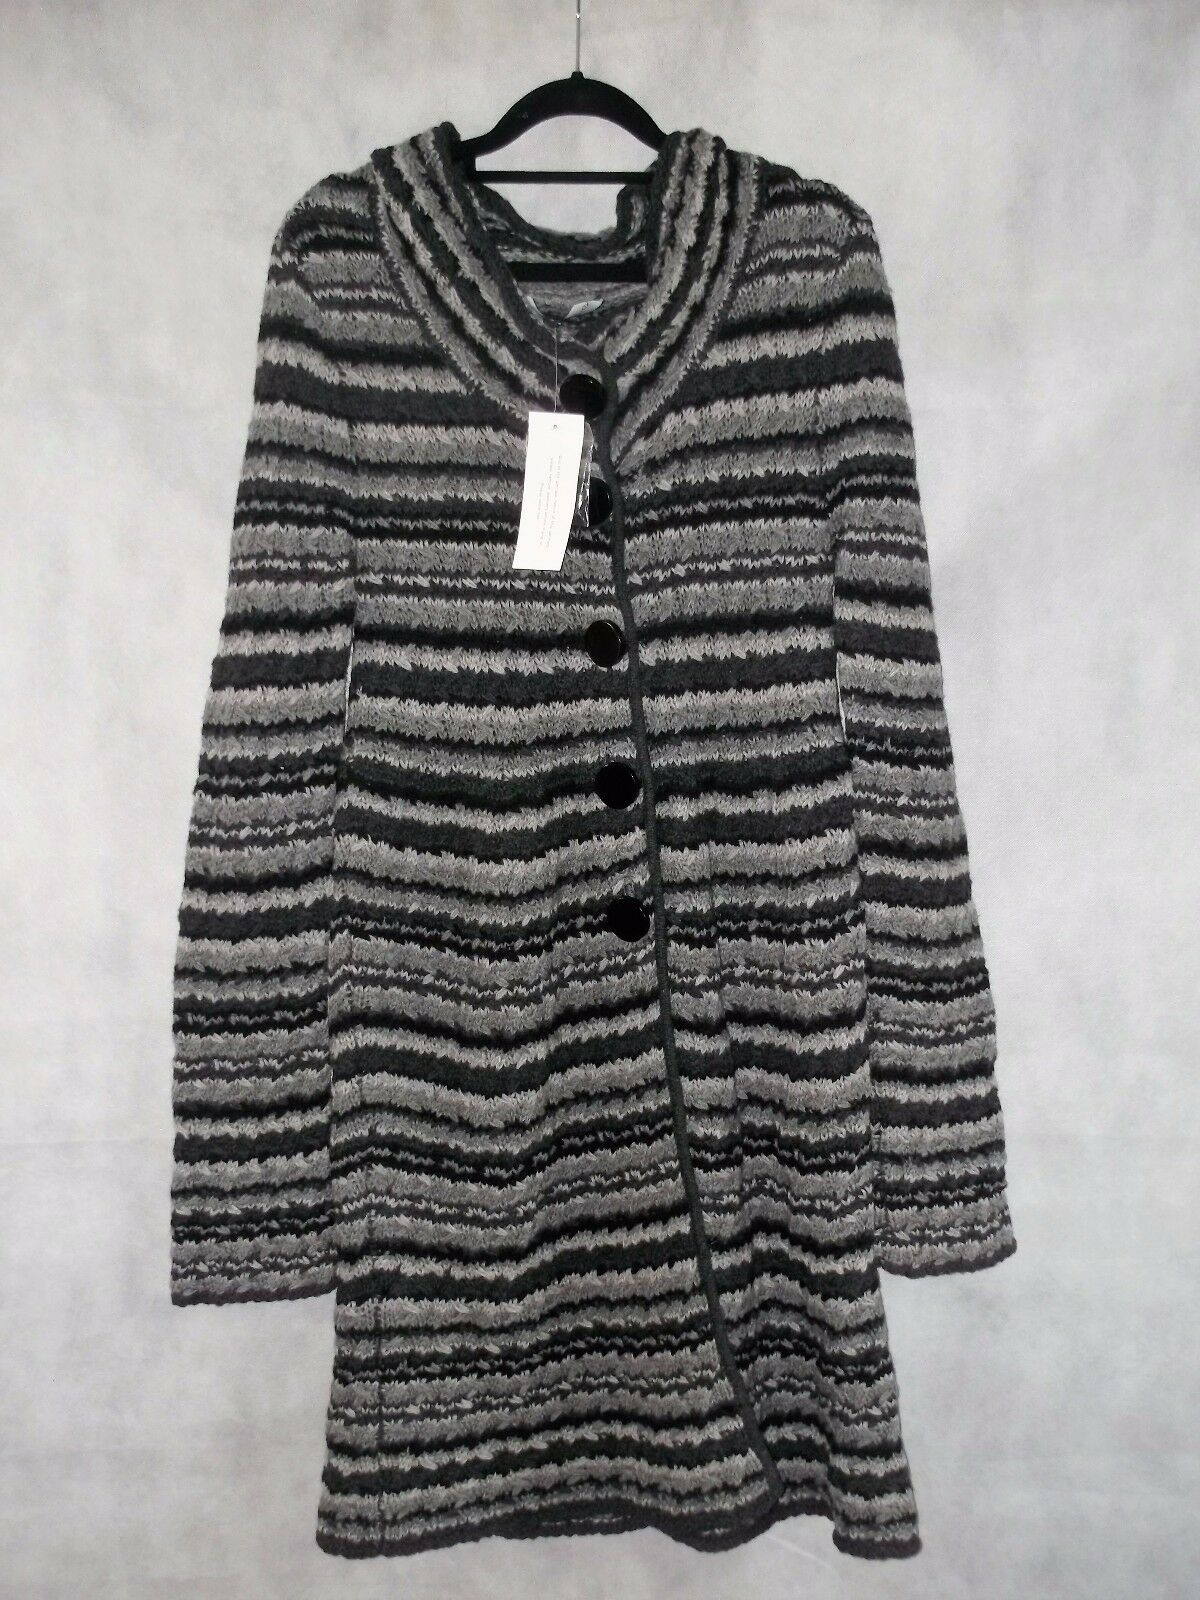 NEW WITH TAGS coat cardigan coatigan FRENCH CONNECTION wool s